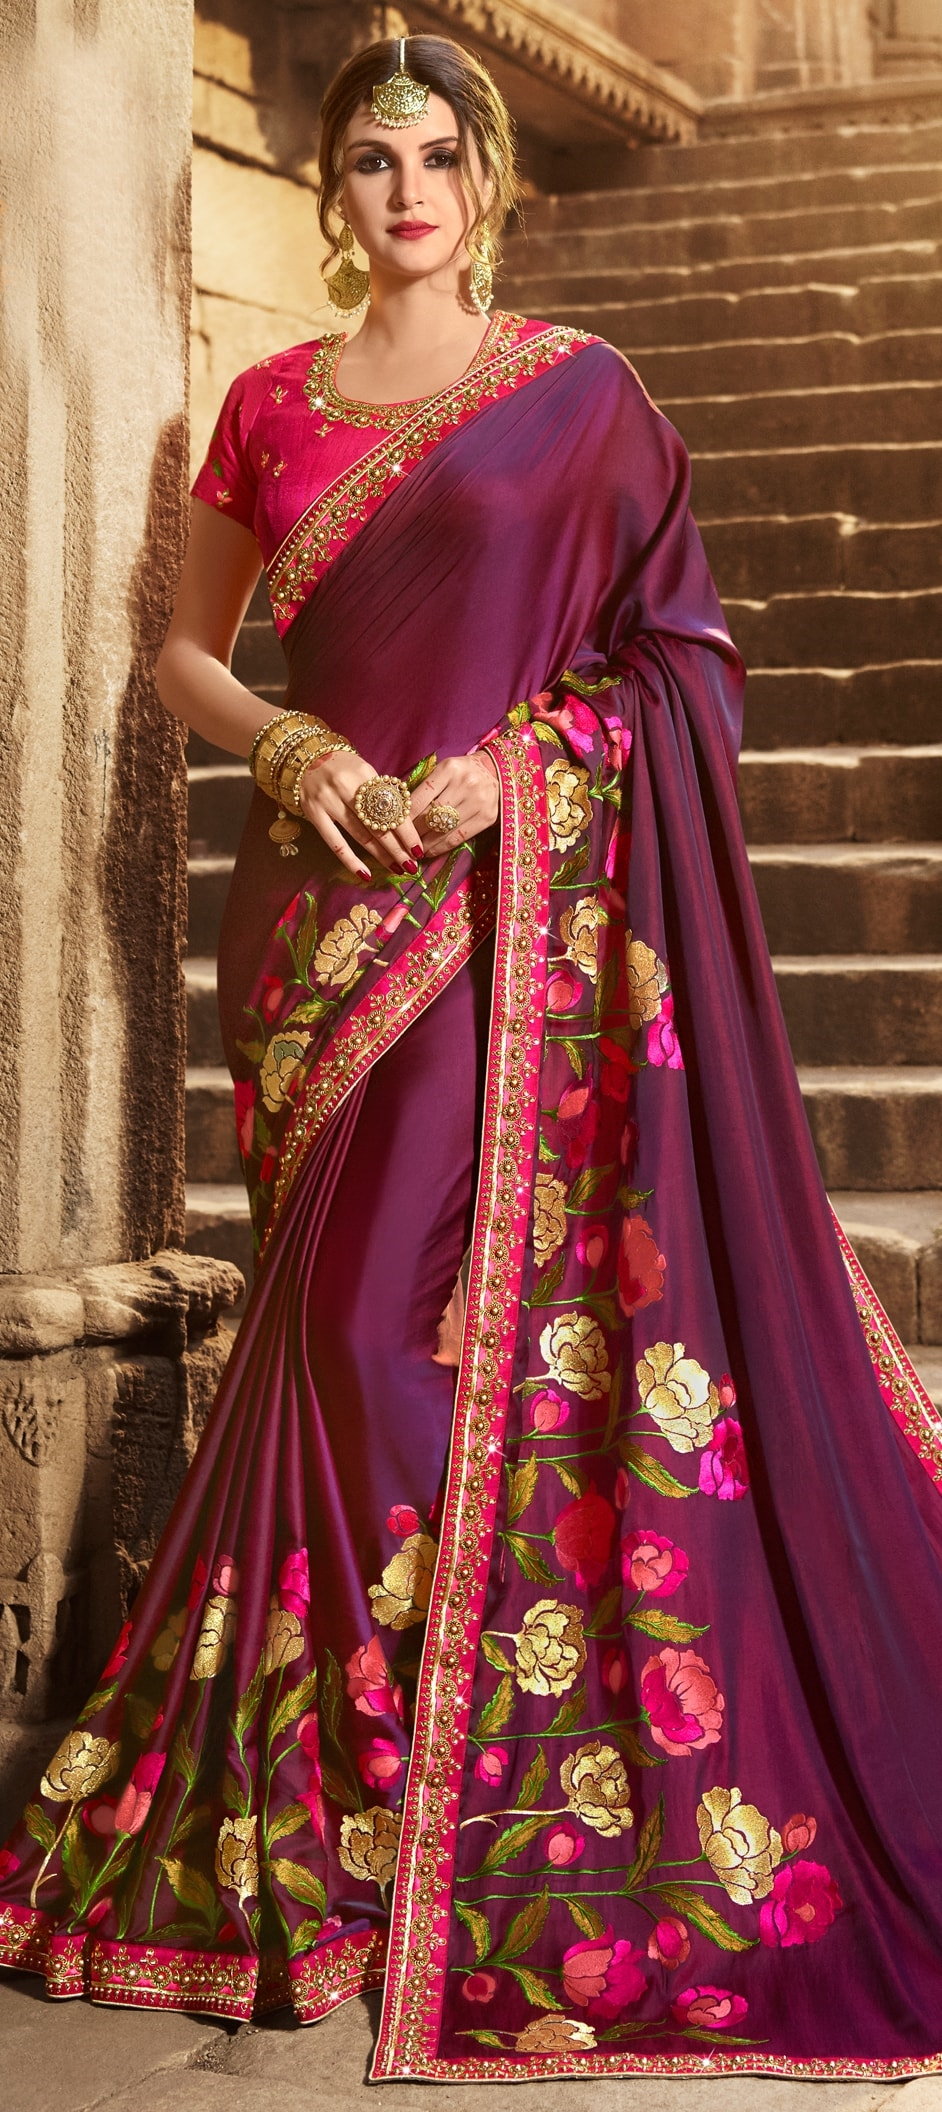 772790: Purple and Violet color family Silk Sarees with matching ...